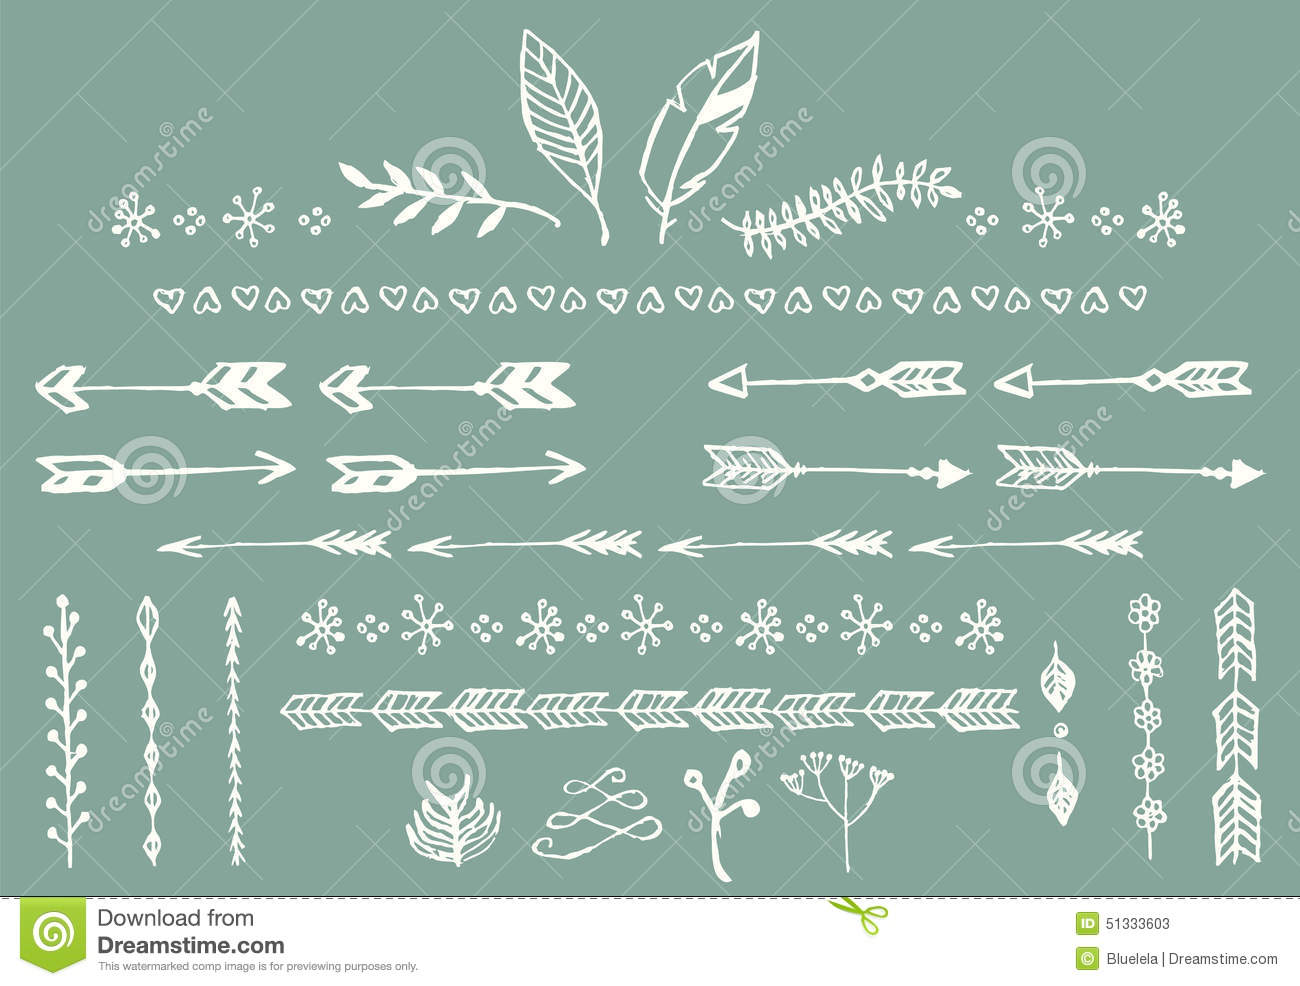 Hand Drawn Vintage Arrows Feathers Dividers And Floral